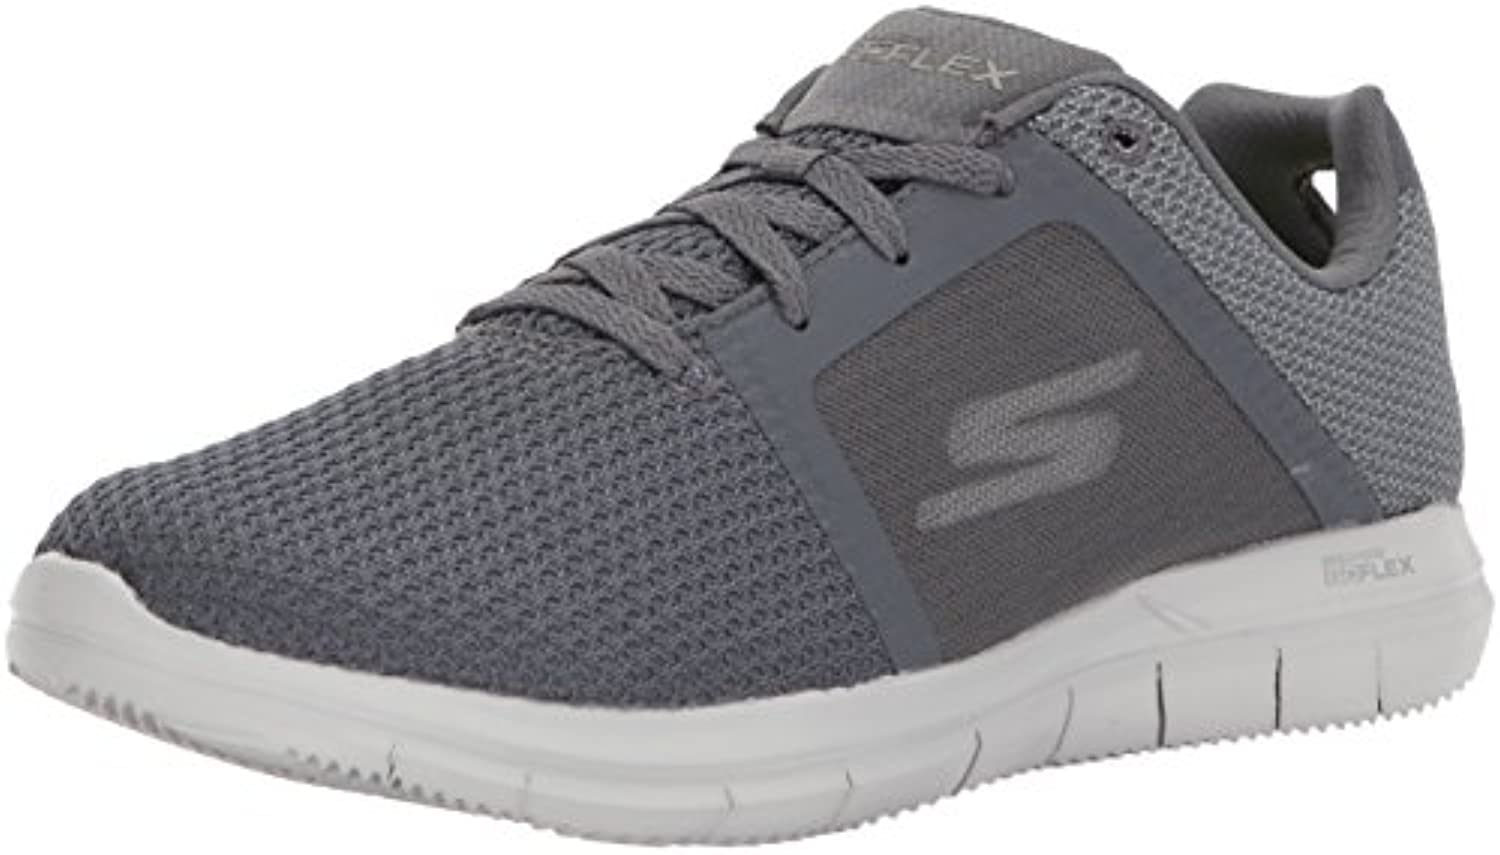 Skechers Performance Men's Go Flex 2 54014 Sneaker  Charcoal  10 M US